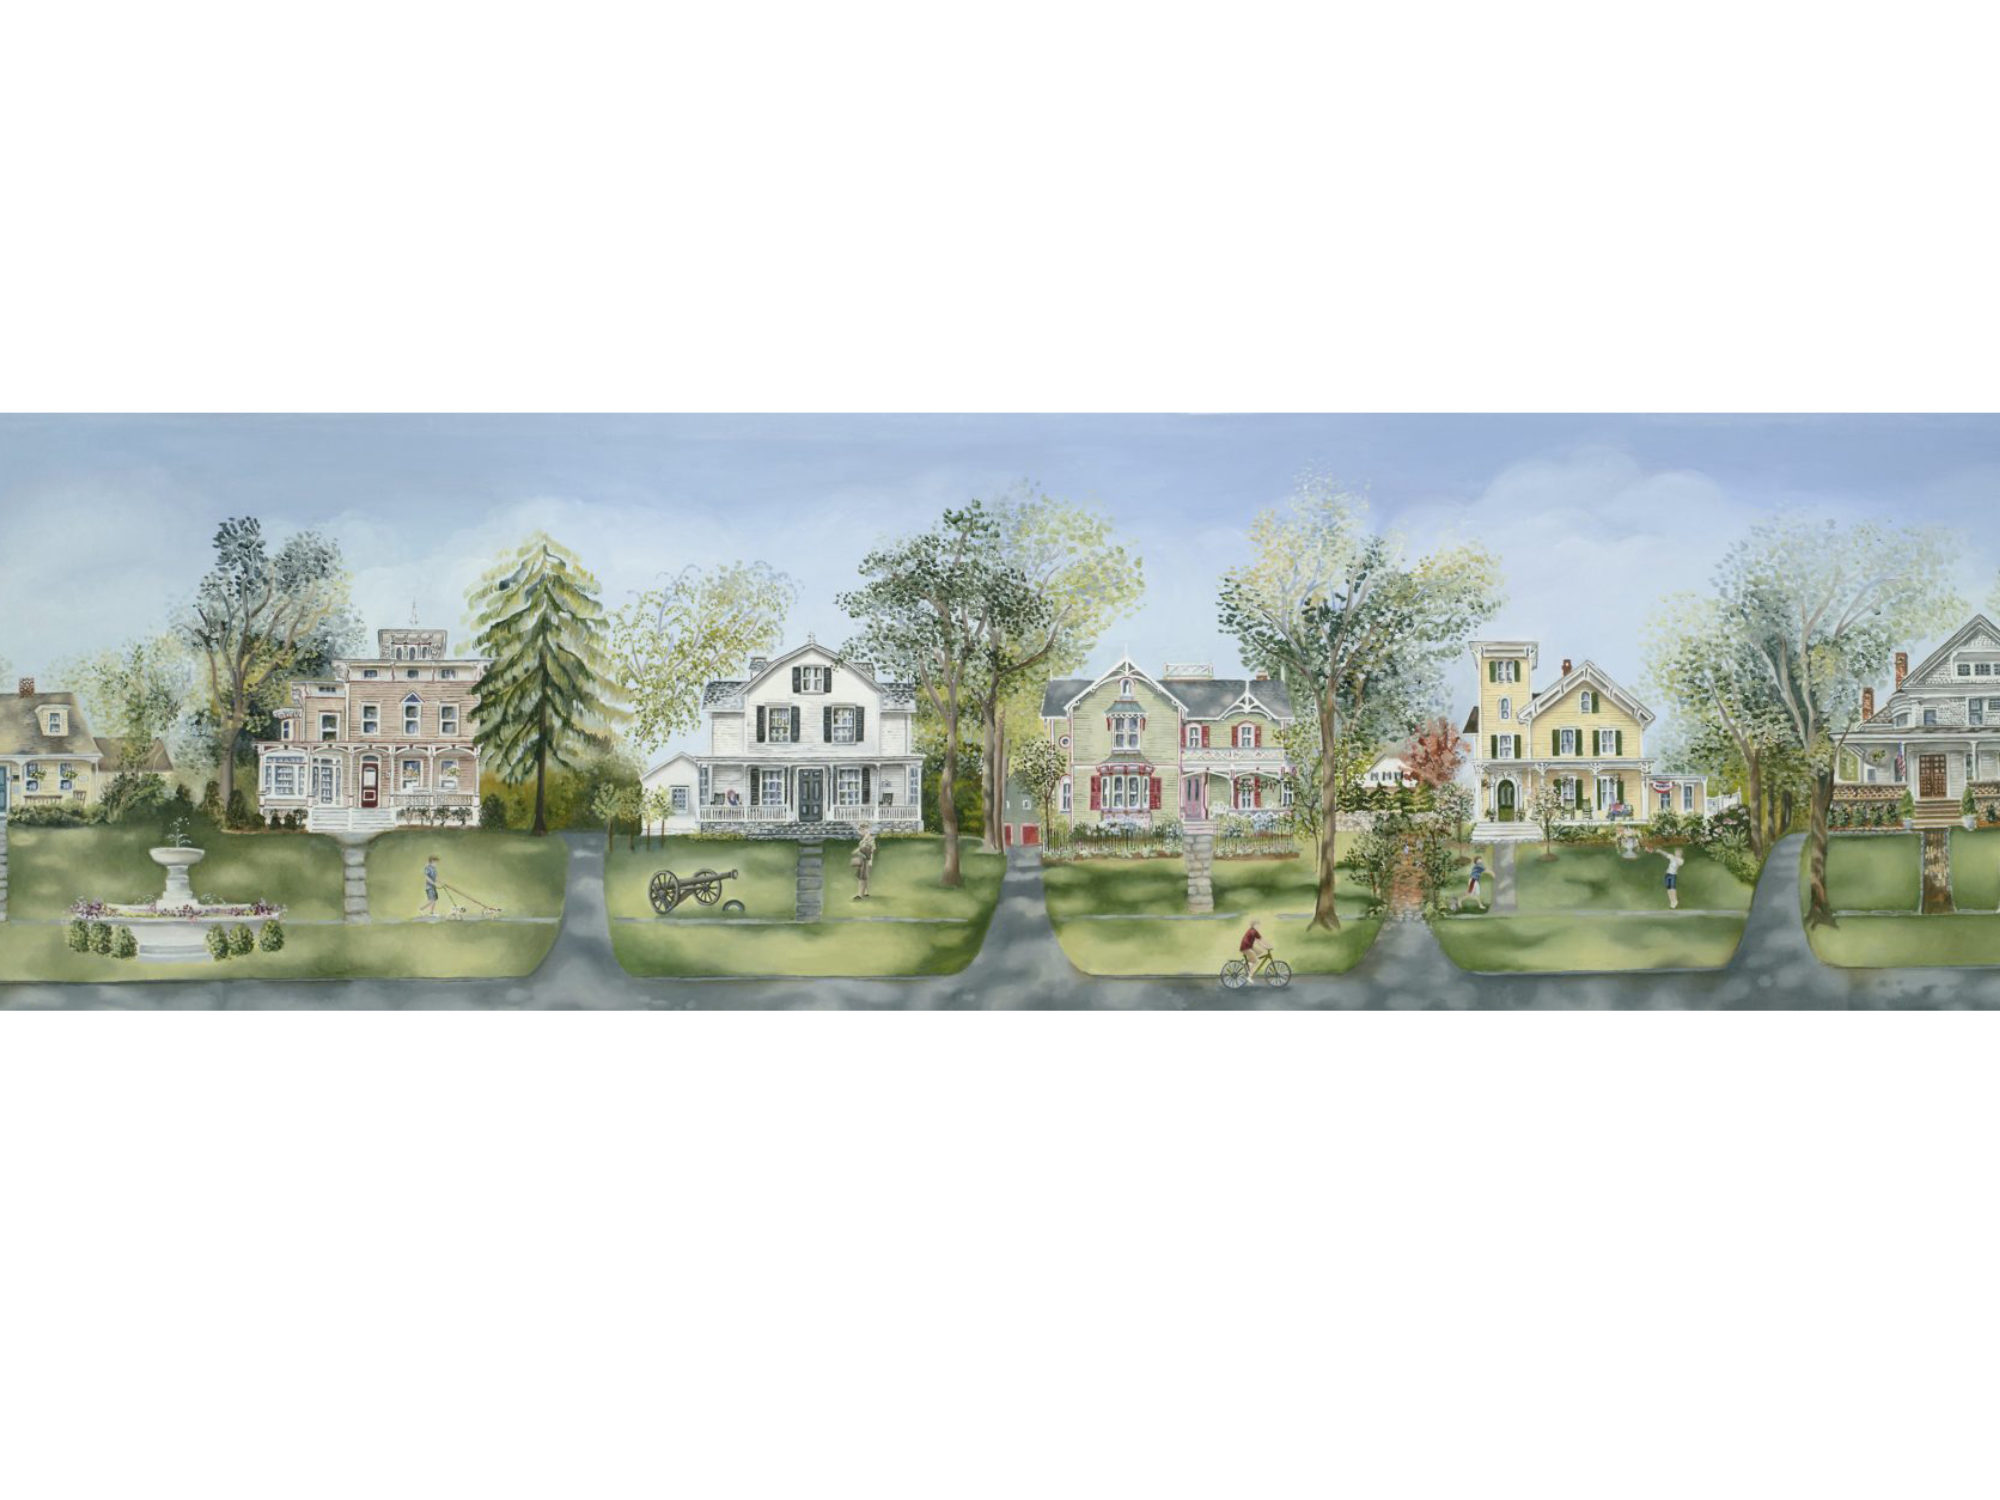 Print of illustration of homes on Main Street in downtown Ridgefield, CT featuring porches.